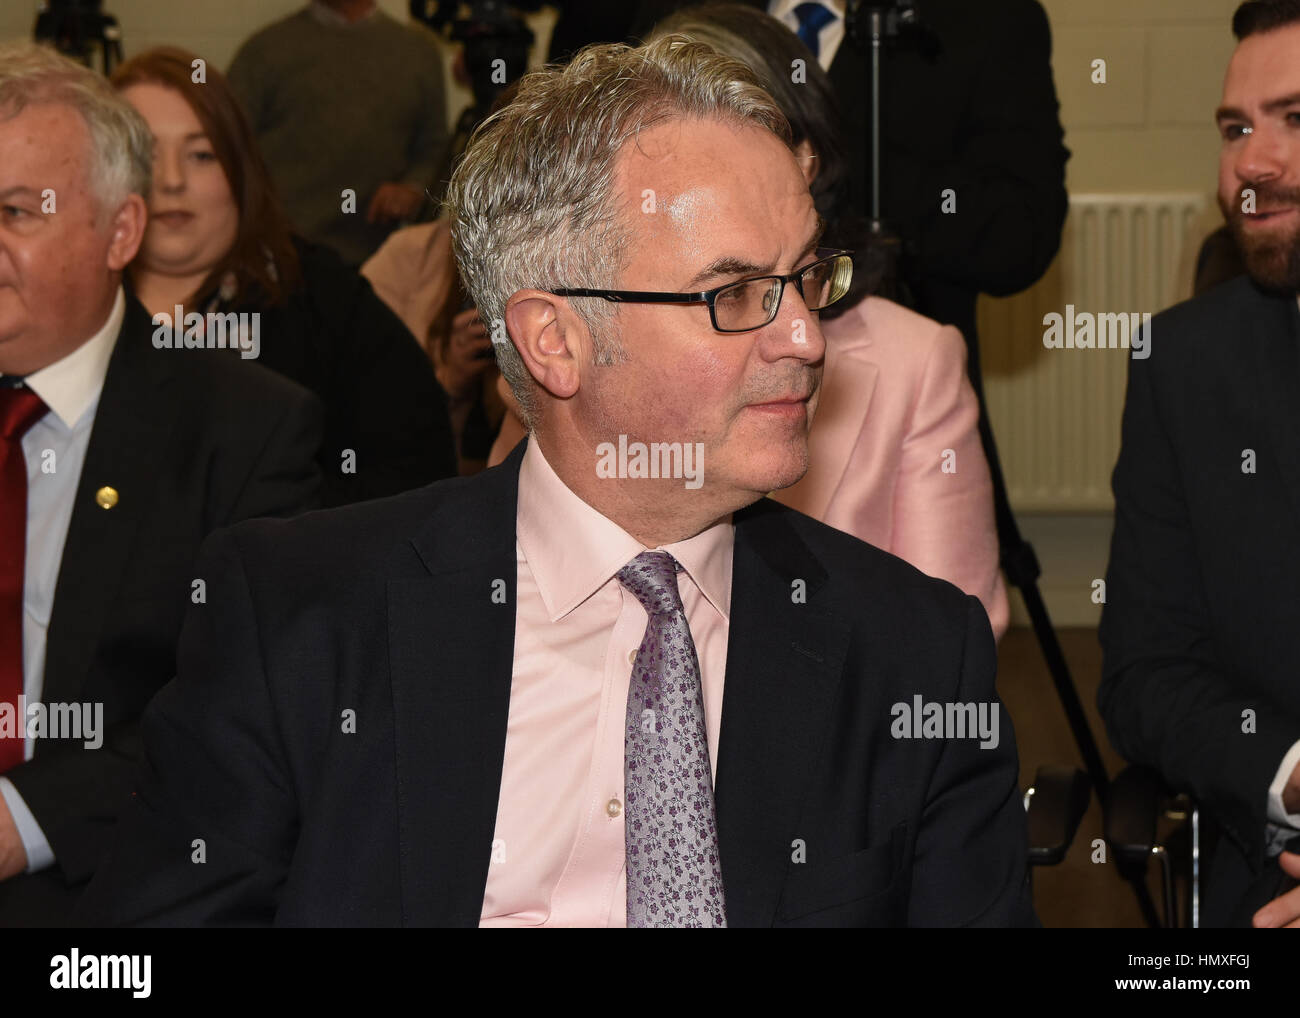 County Armagh, Ireland. 6th Feb, 2017. SDLP West Belfast Candidate Alex Attwood during the parties Election Campaign - Stock Image